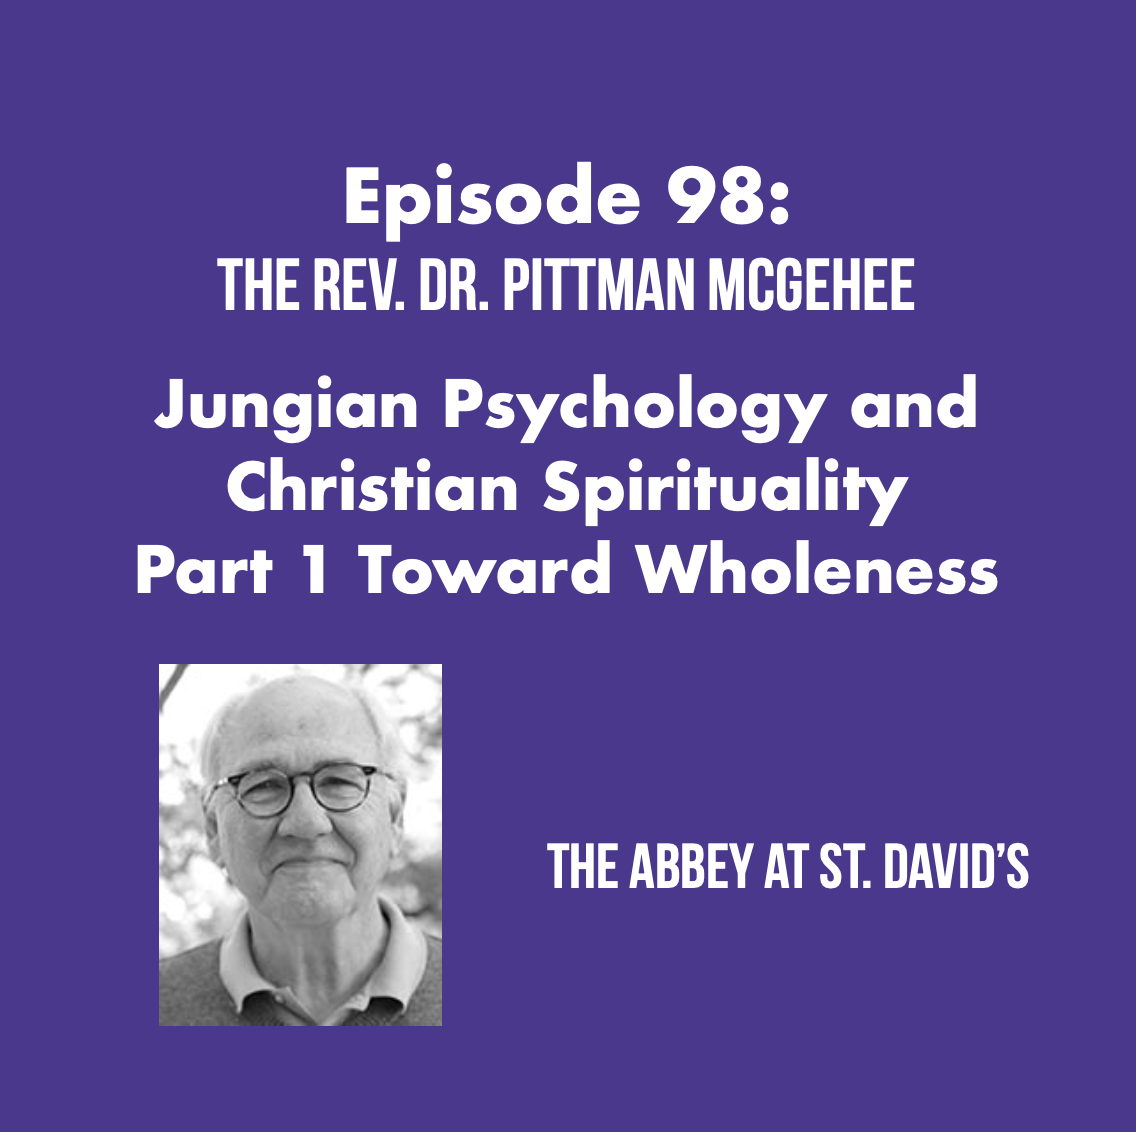 Episode 98: Jungian Psychology and Christian Spirituality – Part 1 Journey Toward Wholeness with The Rev. Dr. Pittman McGehee